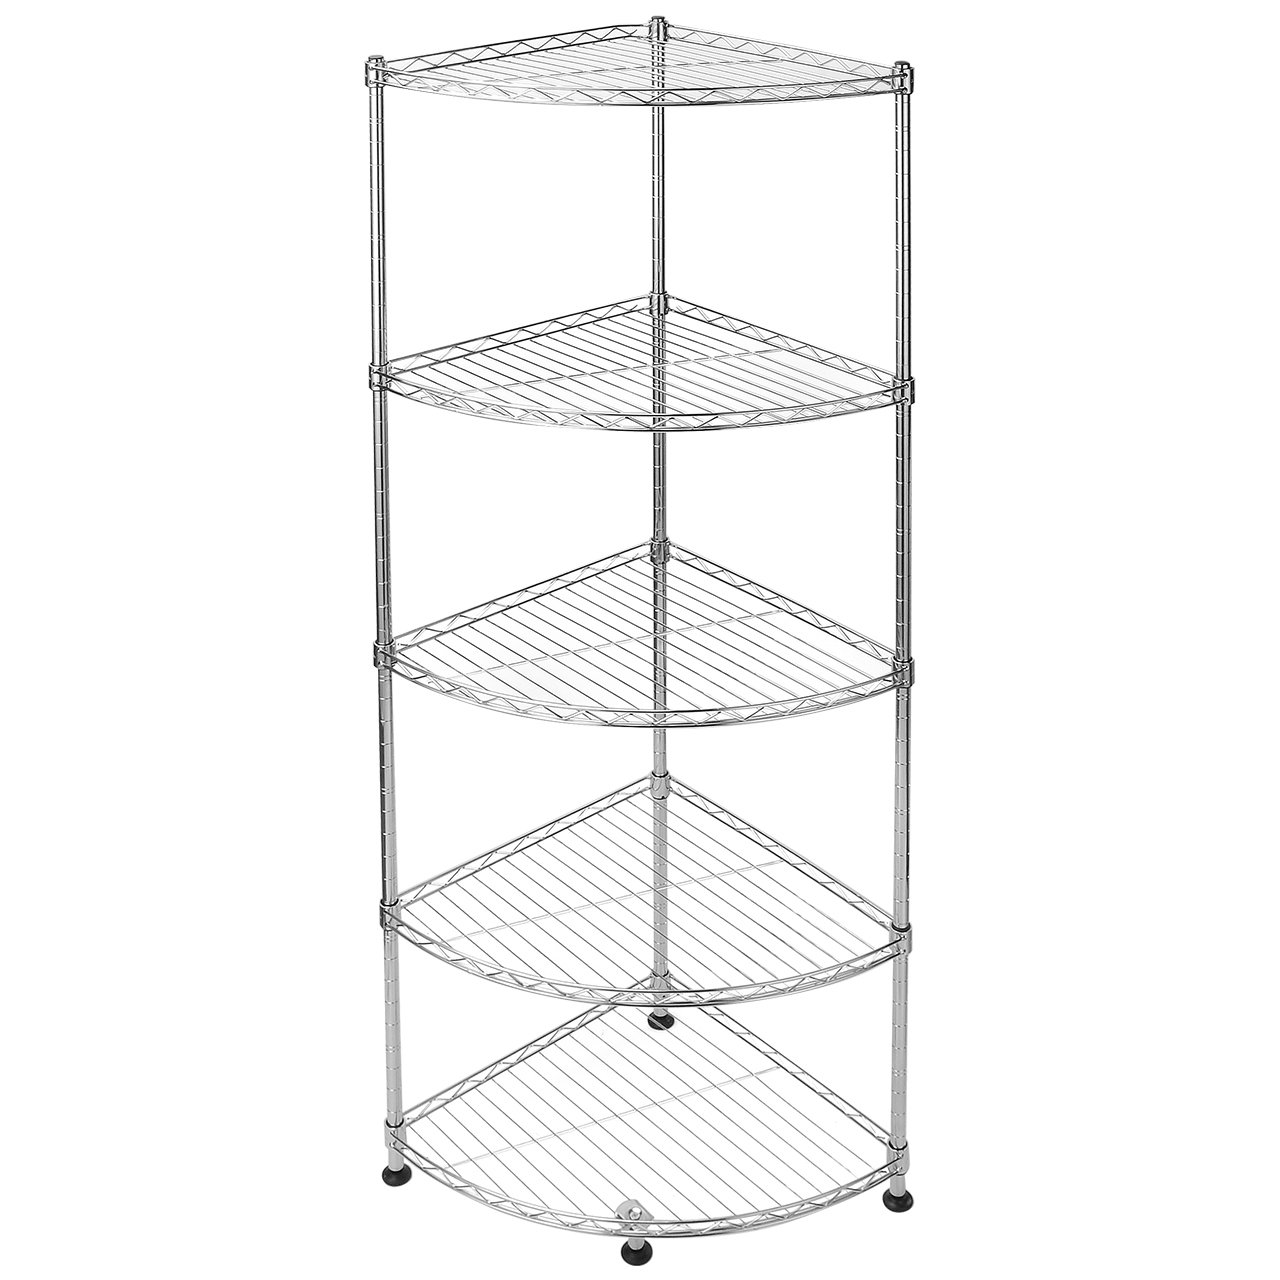 SortWise™ Multipurpose Corner Wire Shelf, Heavy Duty Stainless Steel Storage Shelf, Adjustable Rack Unit (5 Tier)